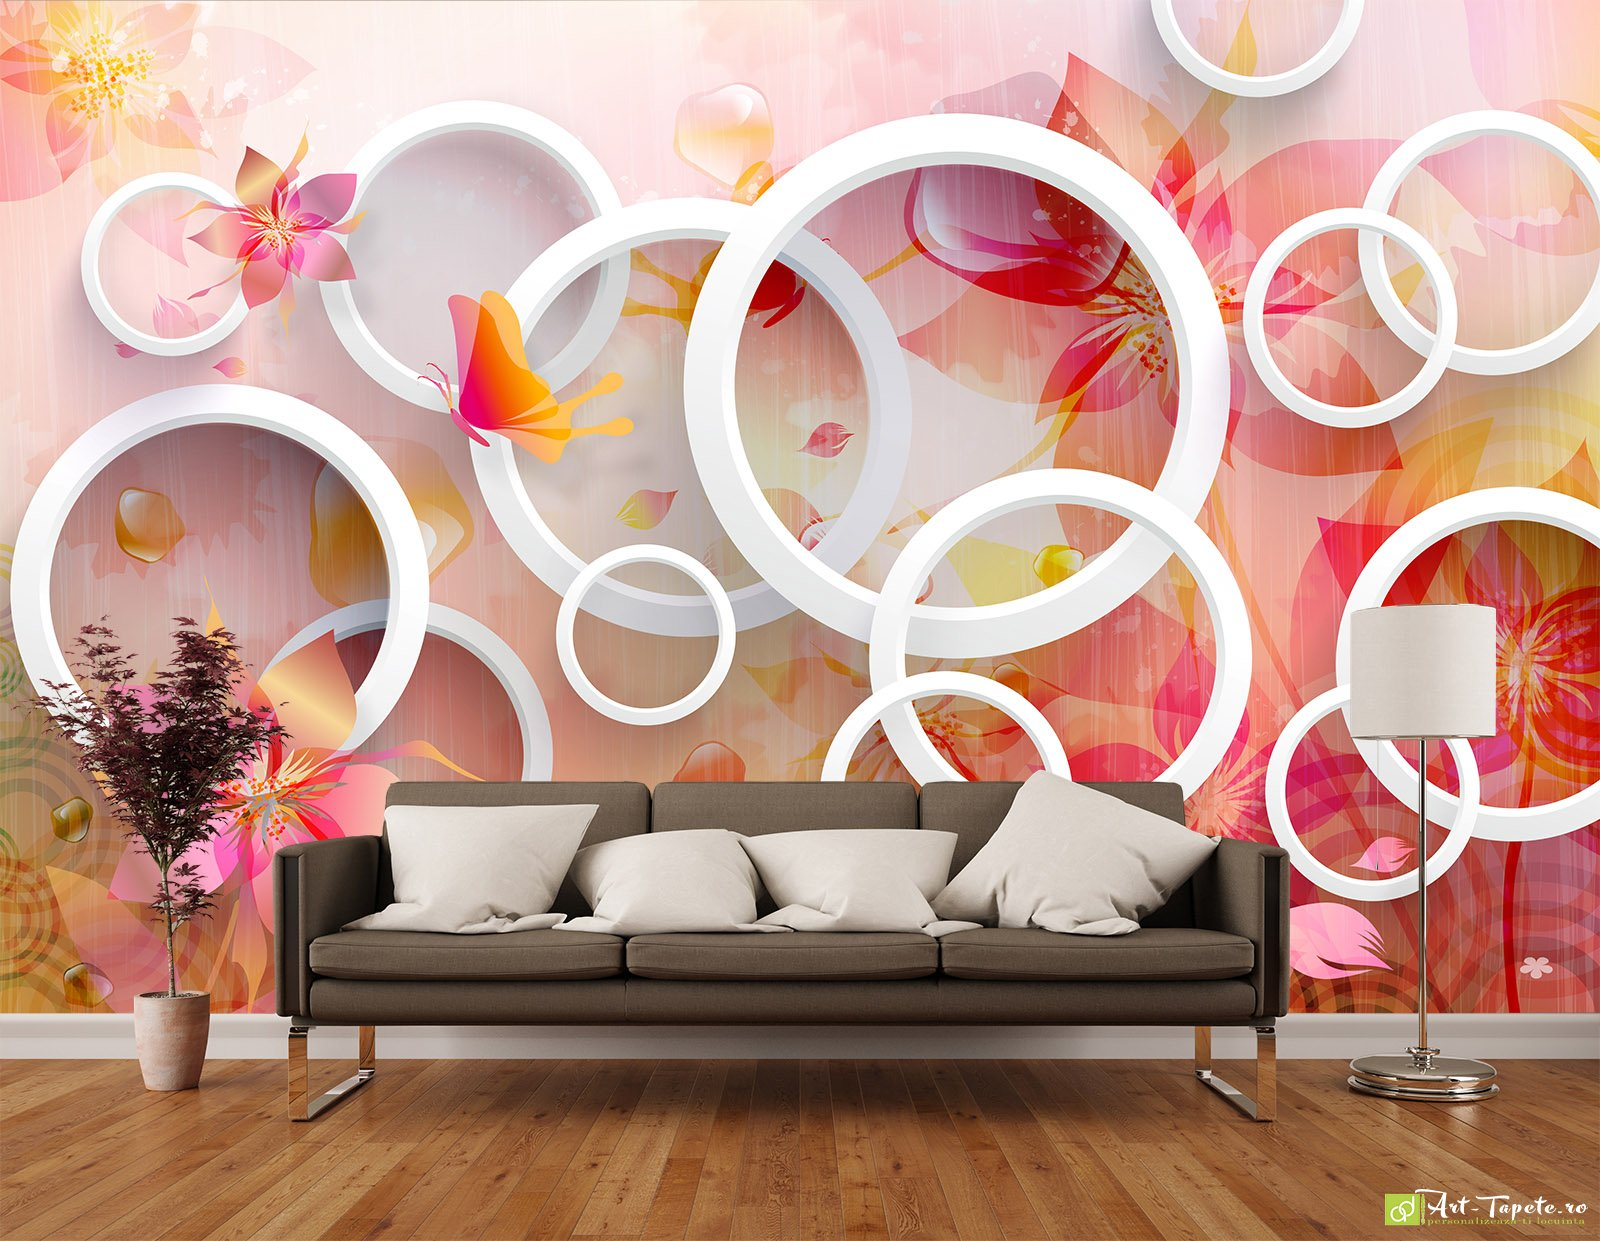 Photo Wallpaper 3d Effect Circles With Abstract Flowers